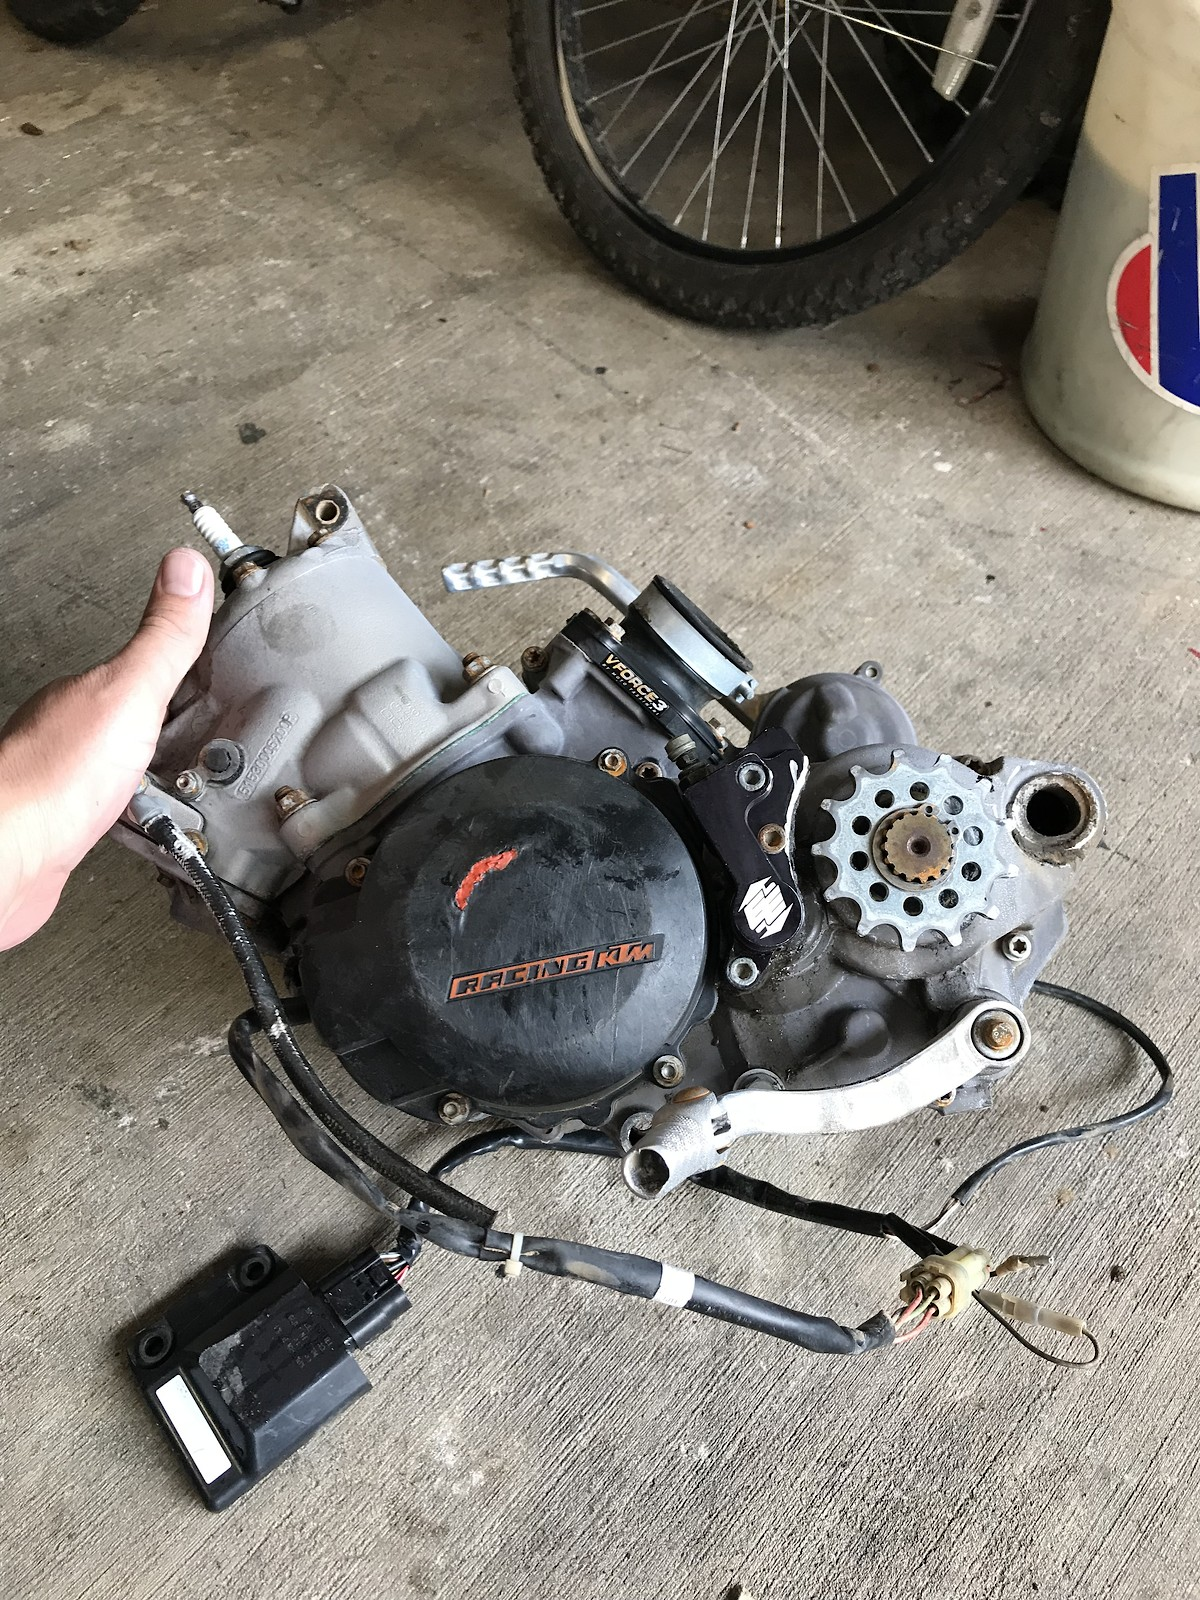 2012 ktm 150 motor plete with carb an electronics For Sale